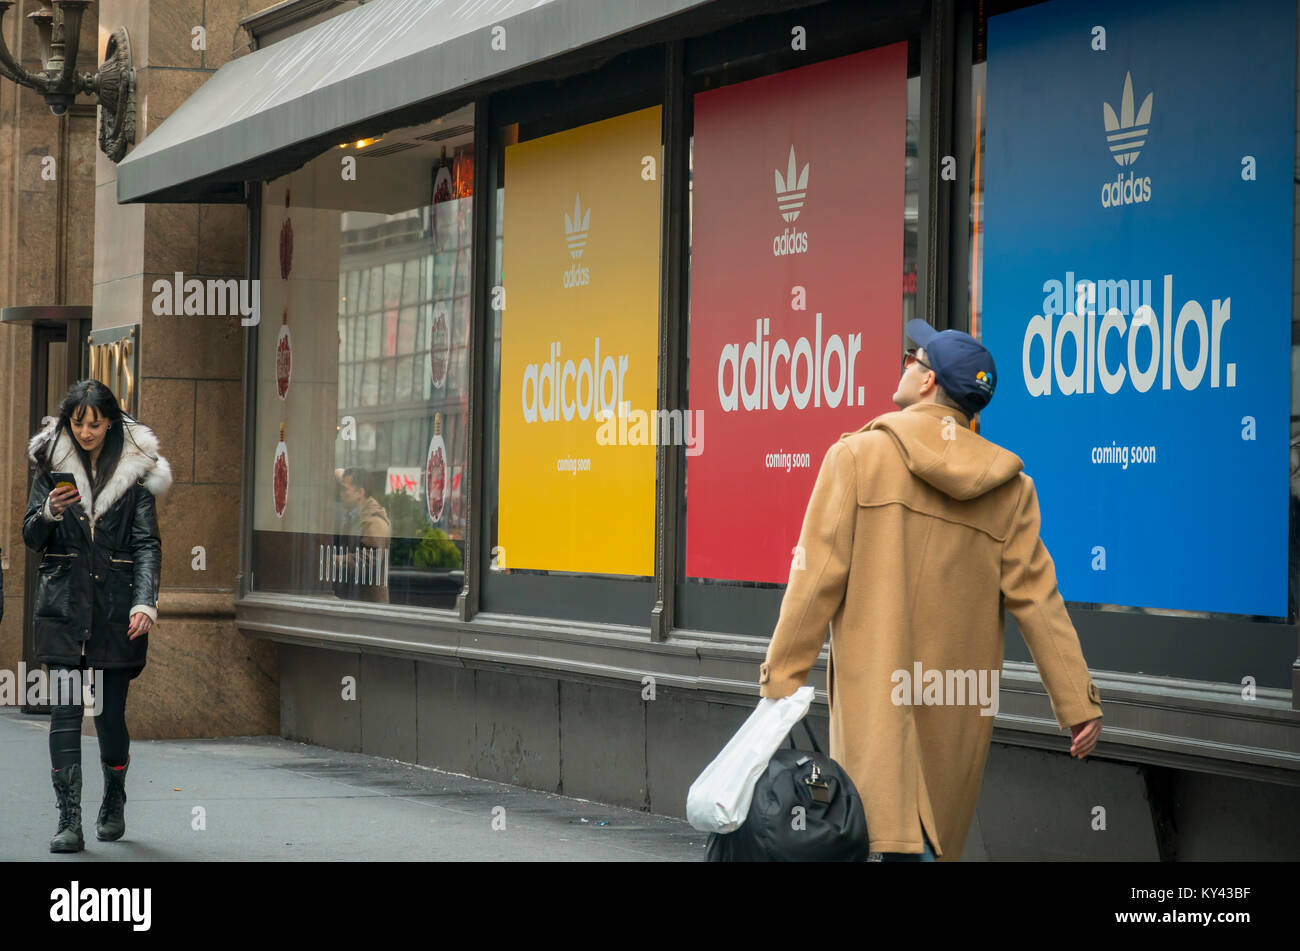 2817239bb45e Shoppers pass by the windows in Macy s Herald Square department store being  prepared for Adidas